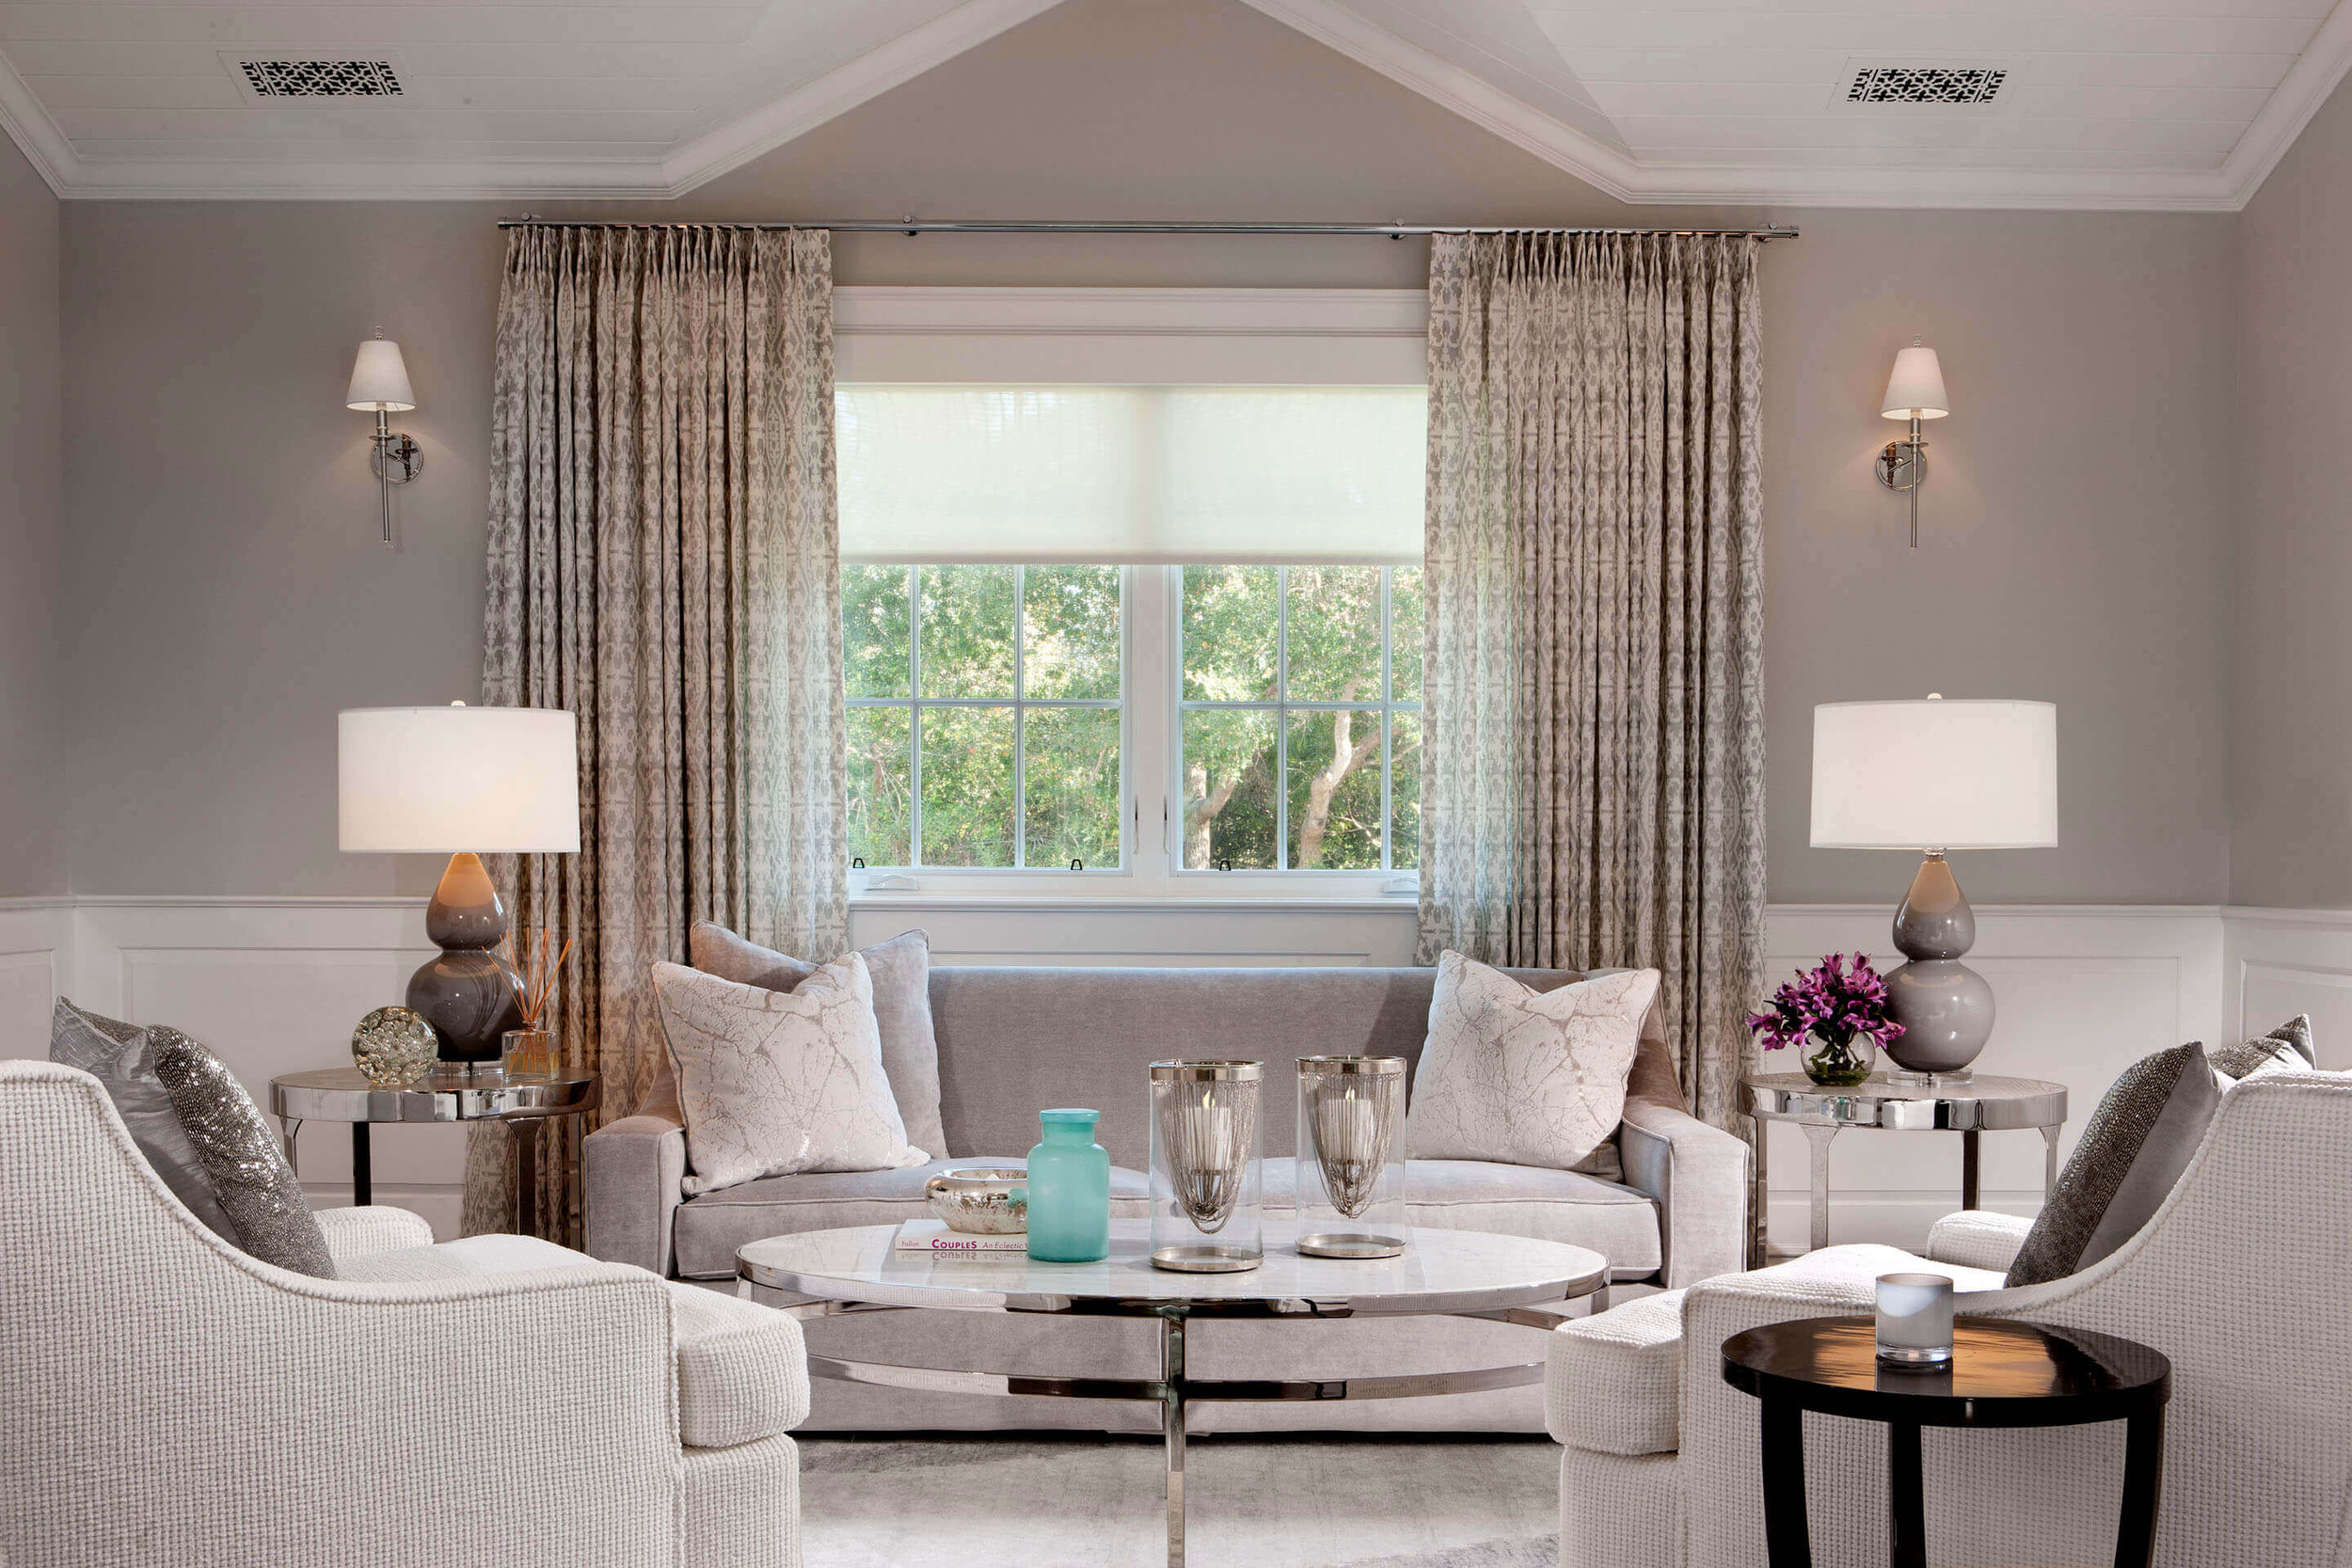 elizabeth-tapper-interiors-brentwood-master-bedroom-sitting-room.jpg